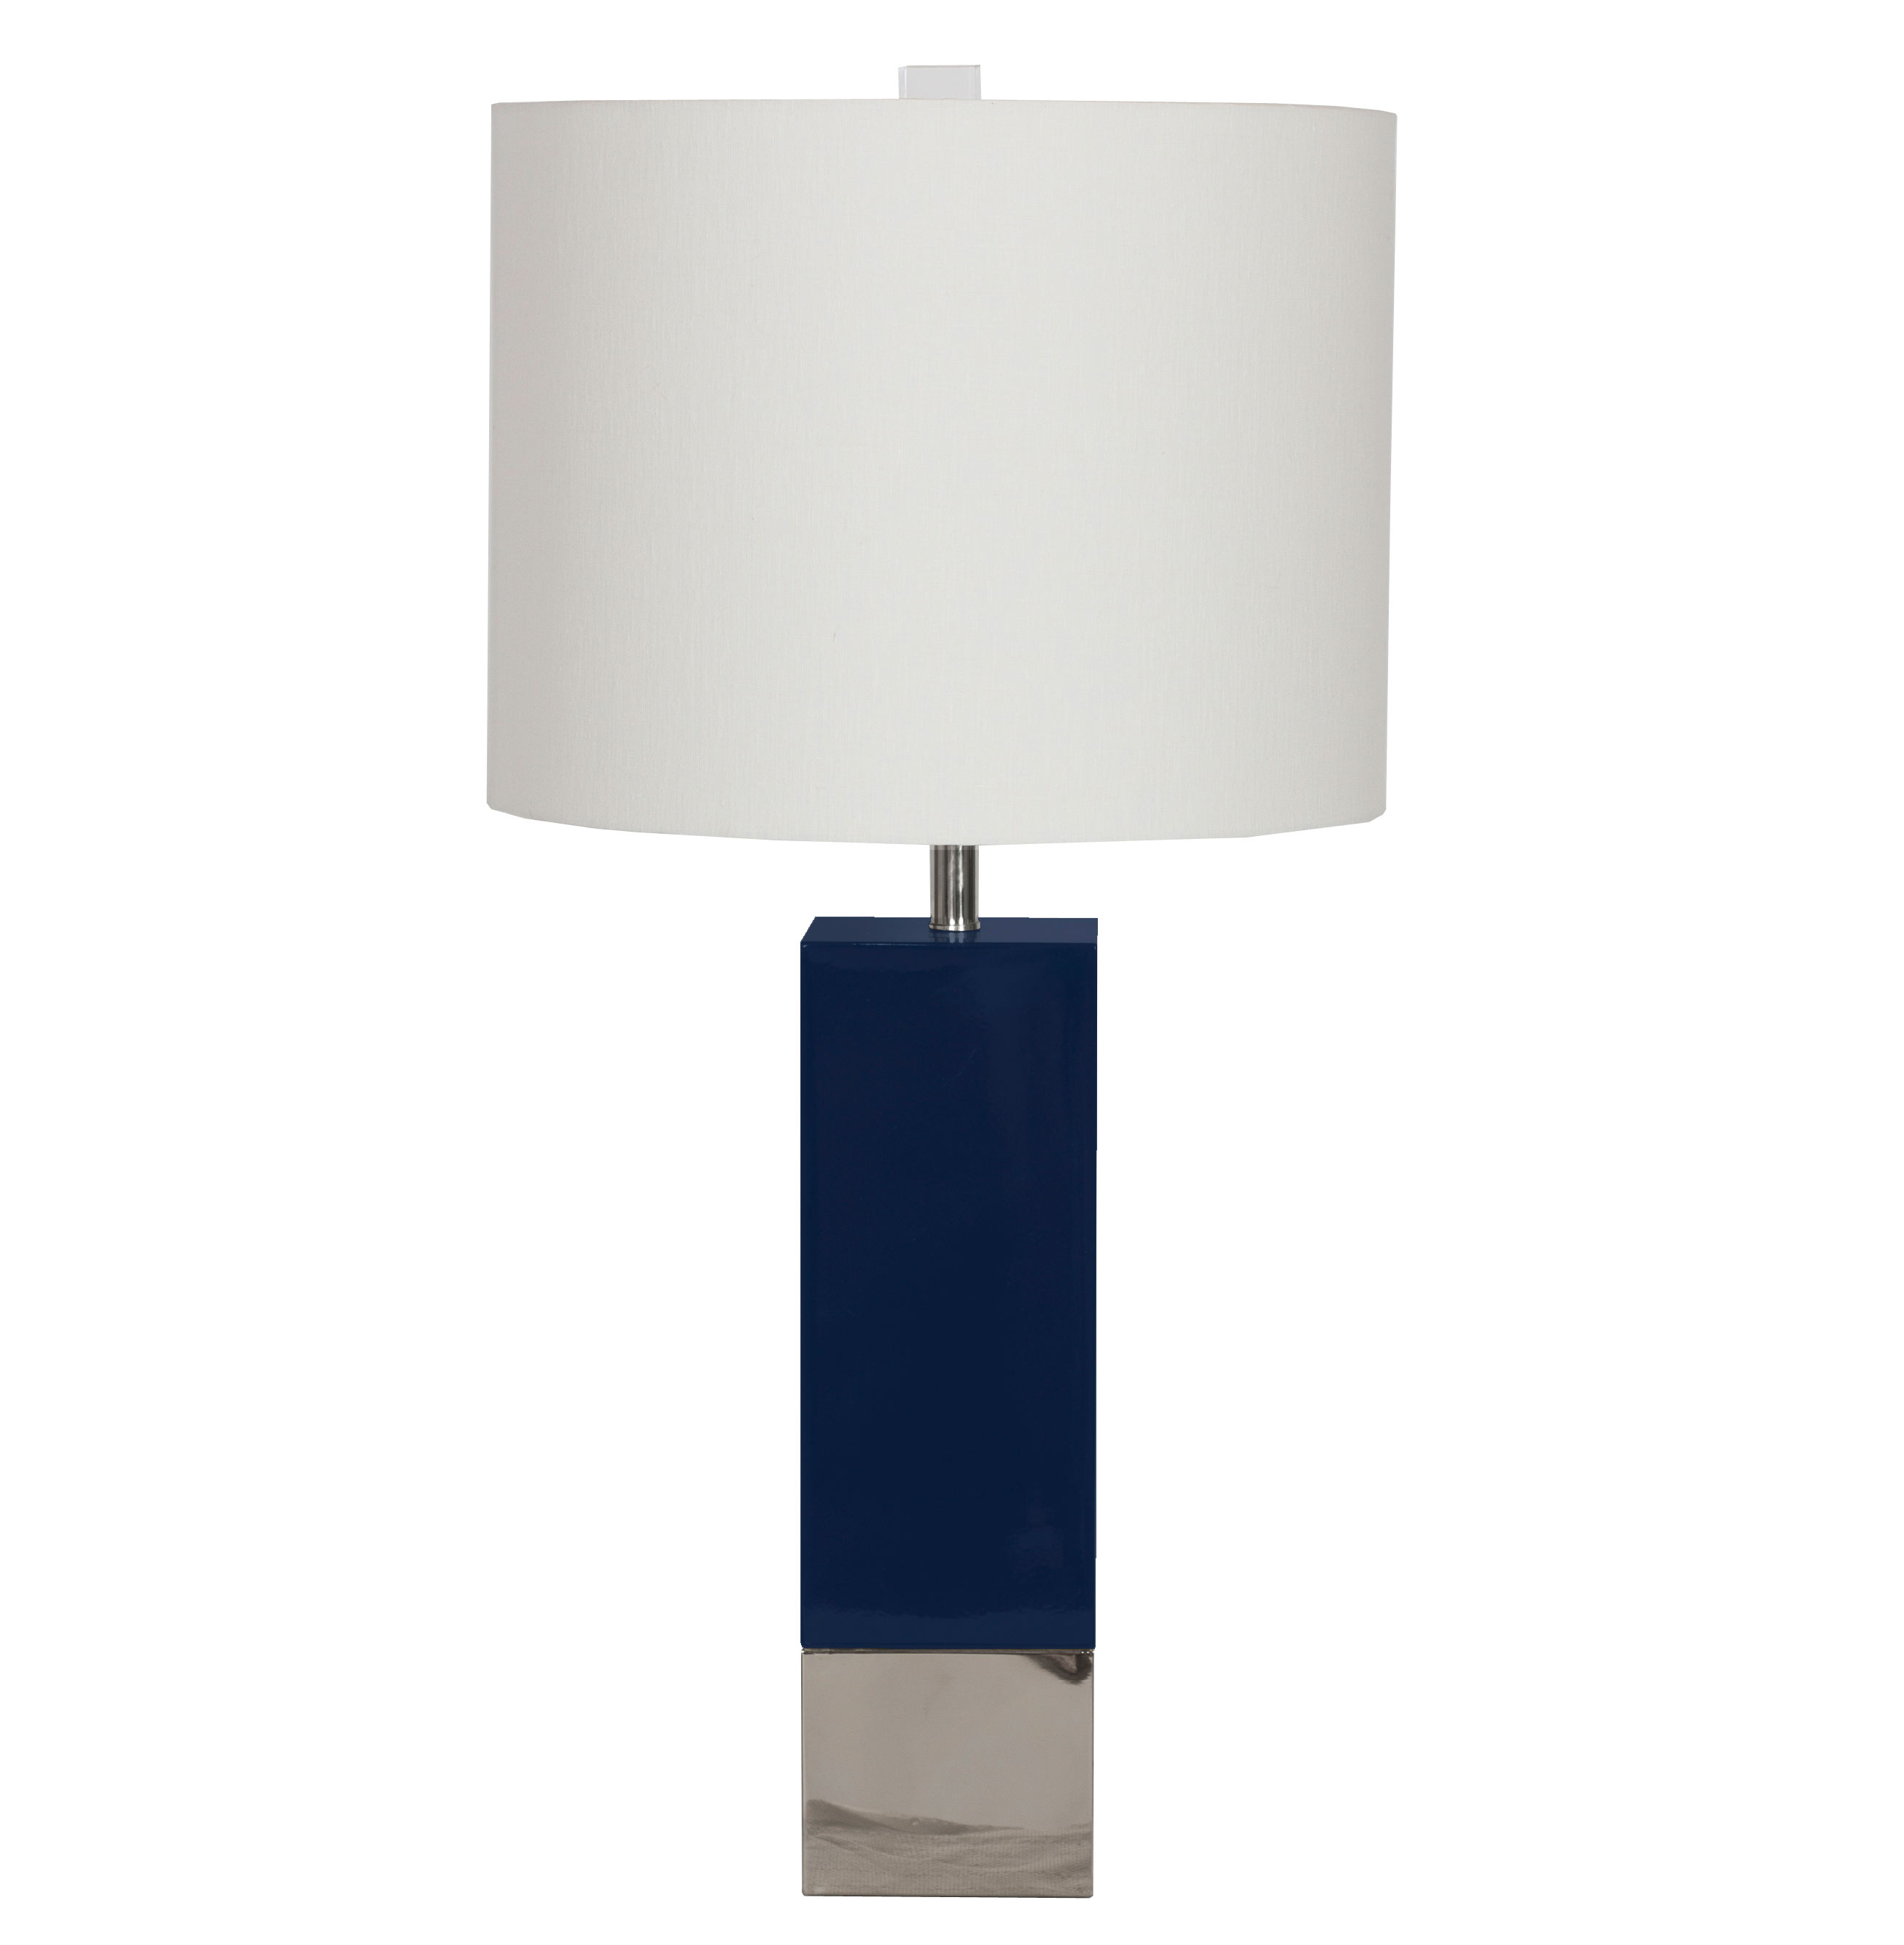 Titan Hollywood Regency Nickel Navy Blue Square Table Lamp